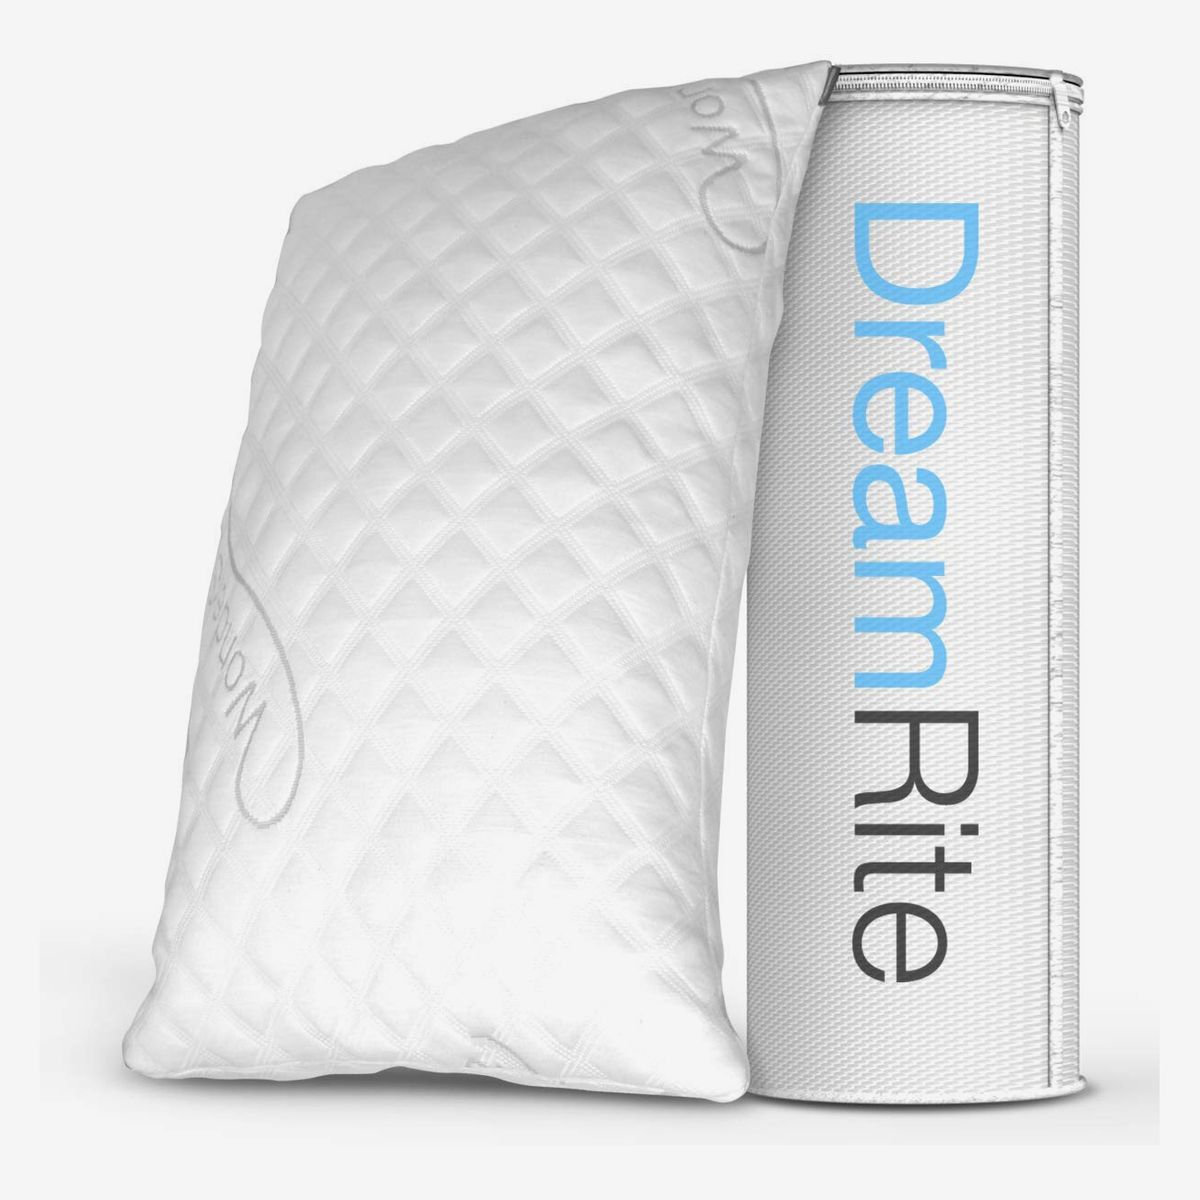 Hotel YILANS Sleeping Pillows Cotton Soft Pillow Cotton Medium Low Cervical Spine Health Care Thin Pillow Feather Velvet Suitable for Home 2 Pack Etc.